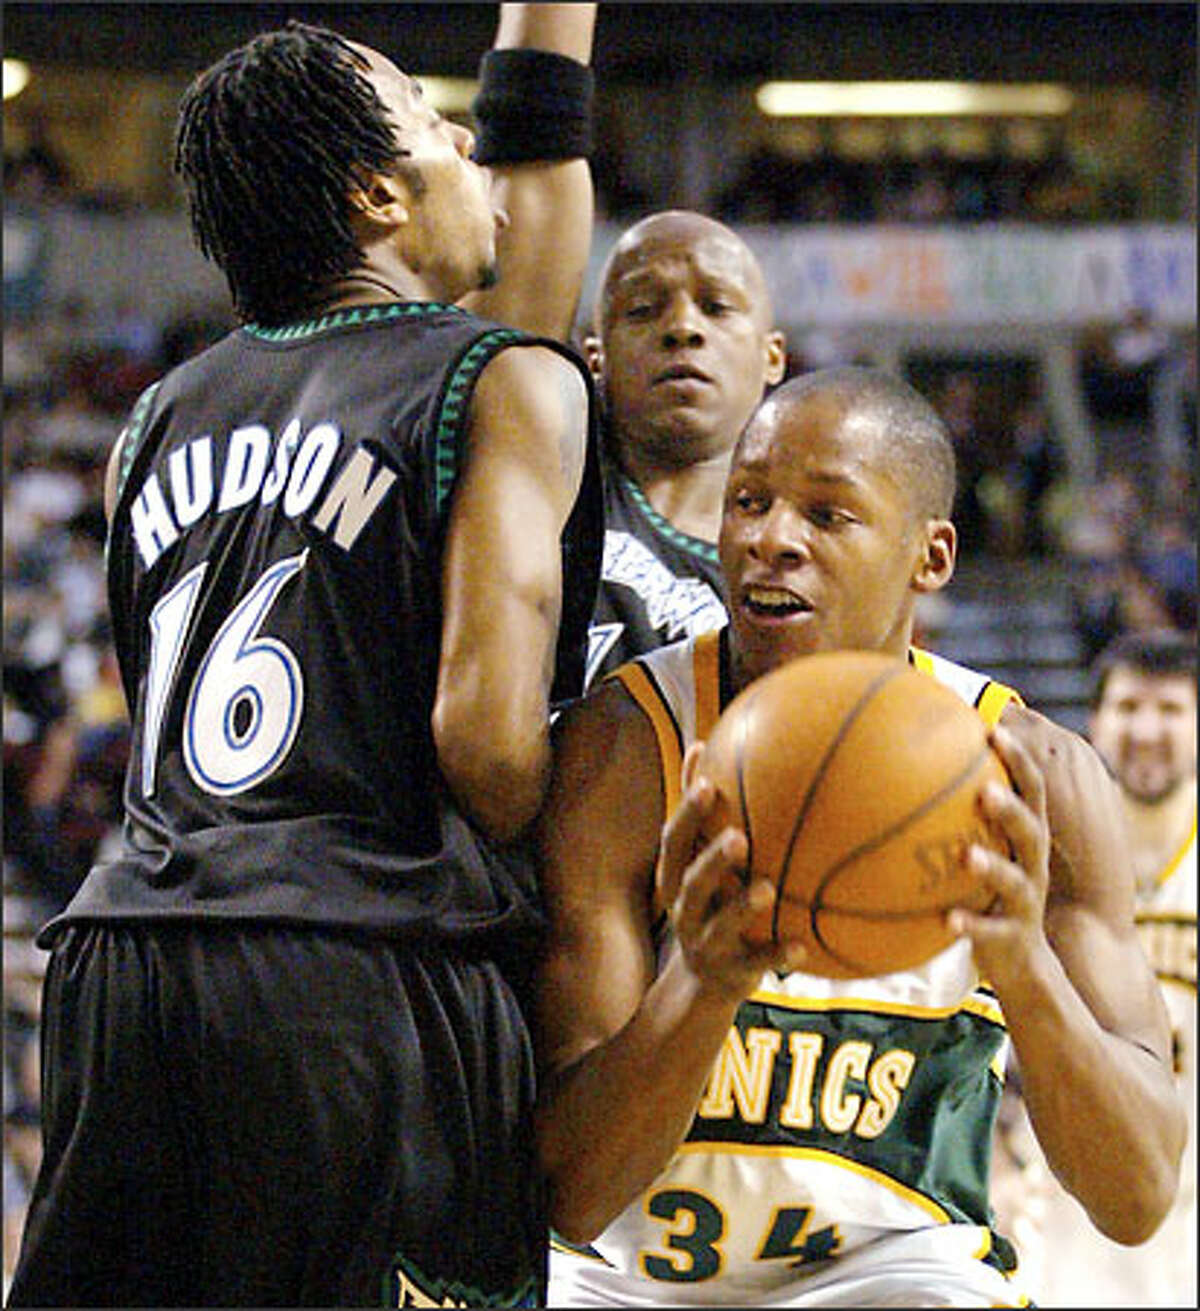 Sonics guard Ray Allen drives past the Timberwolves' Anthony Peeler and Troy Hudson last night. Allen led all scorers with 33 points.